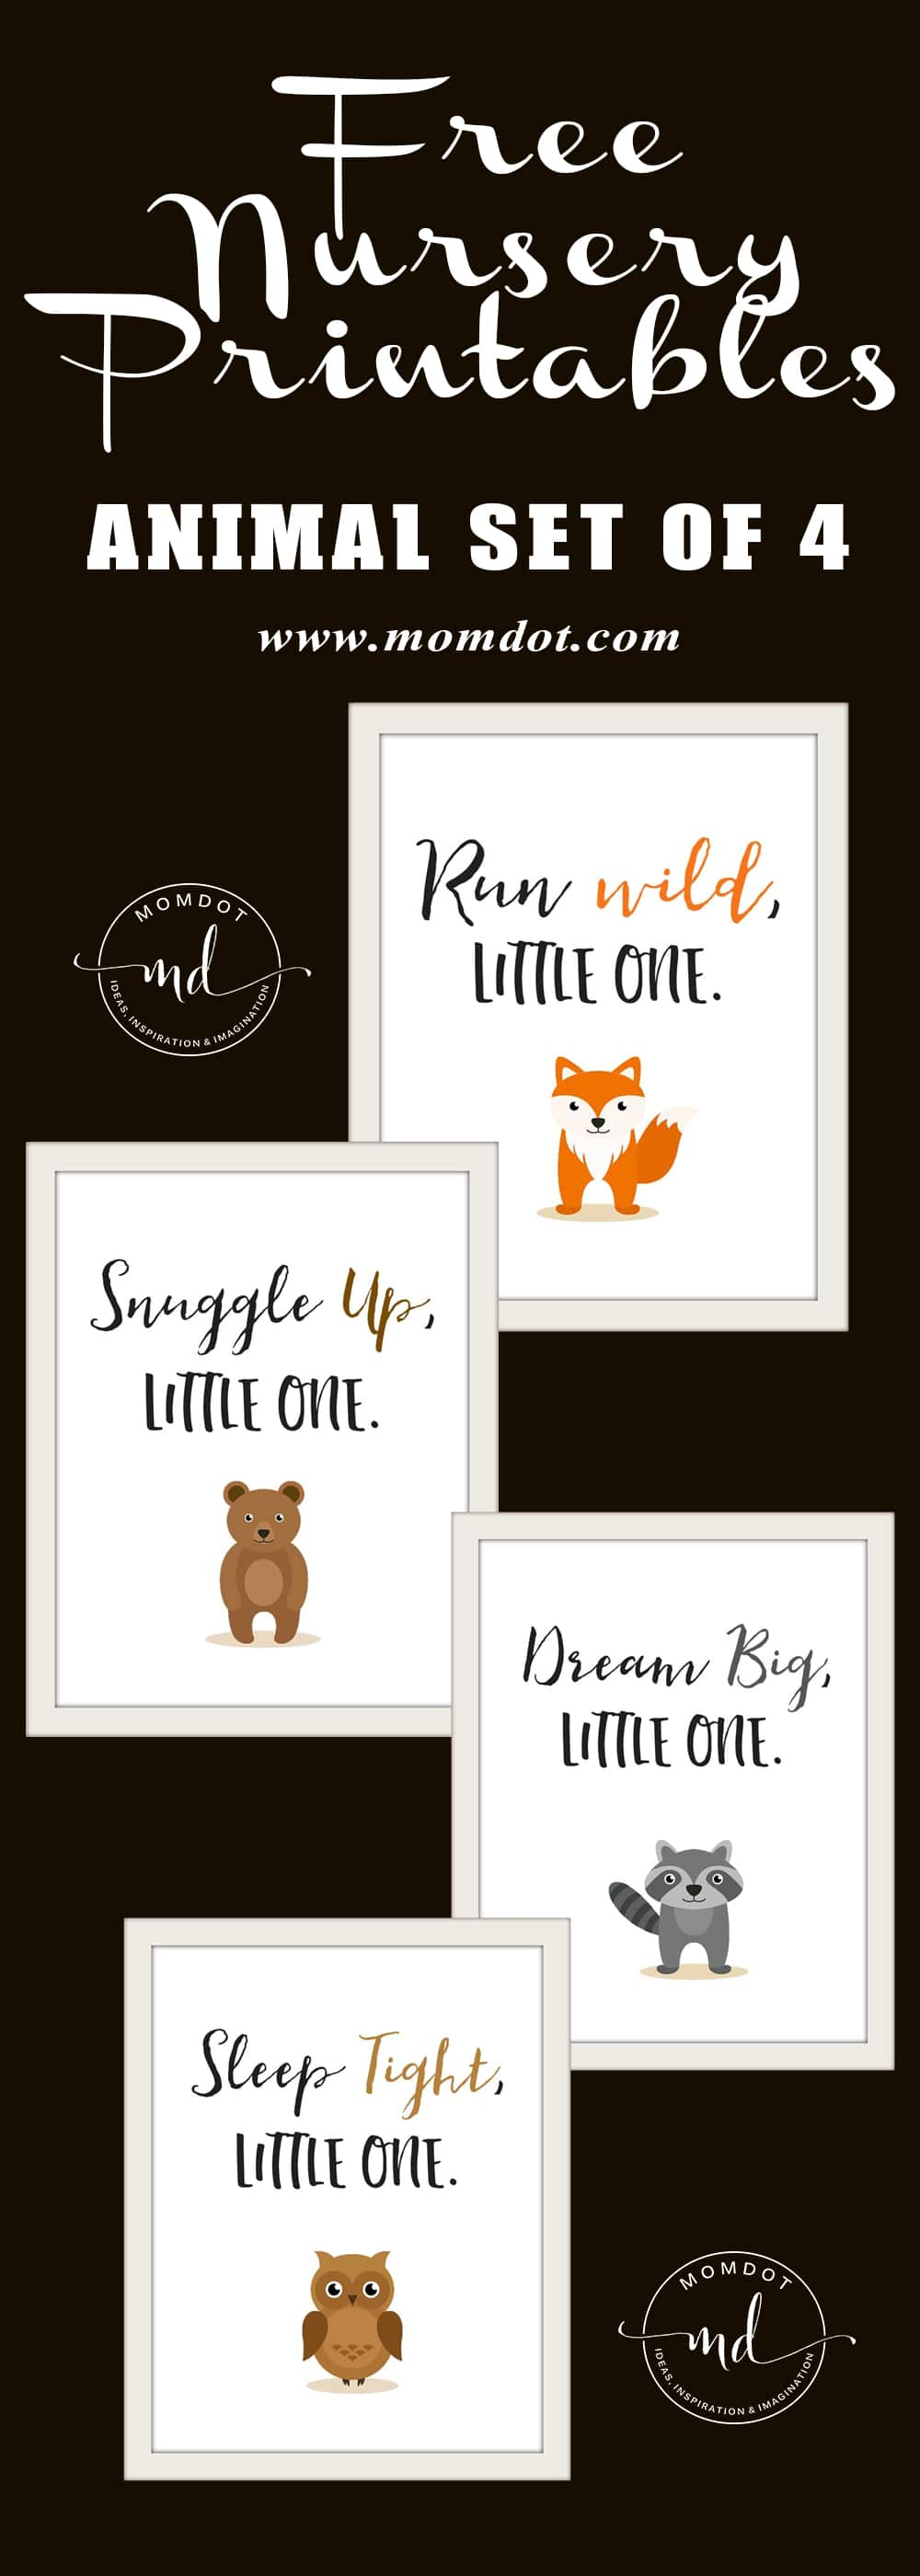 picture relating to Would You Rather Cards Printable known as Free of charge Nursery Printables: Animal Preset of 4 -